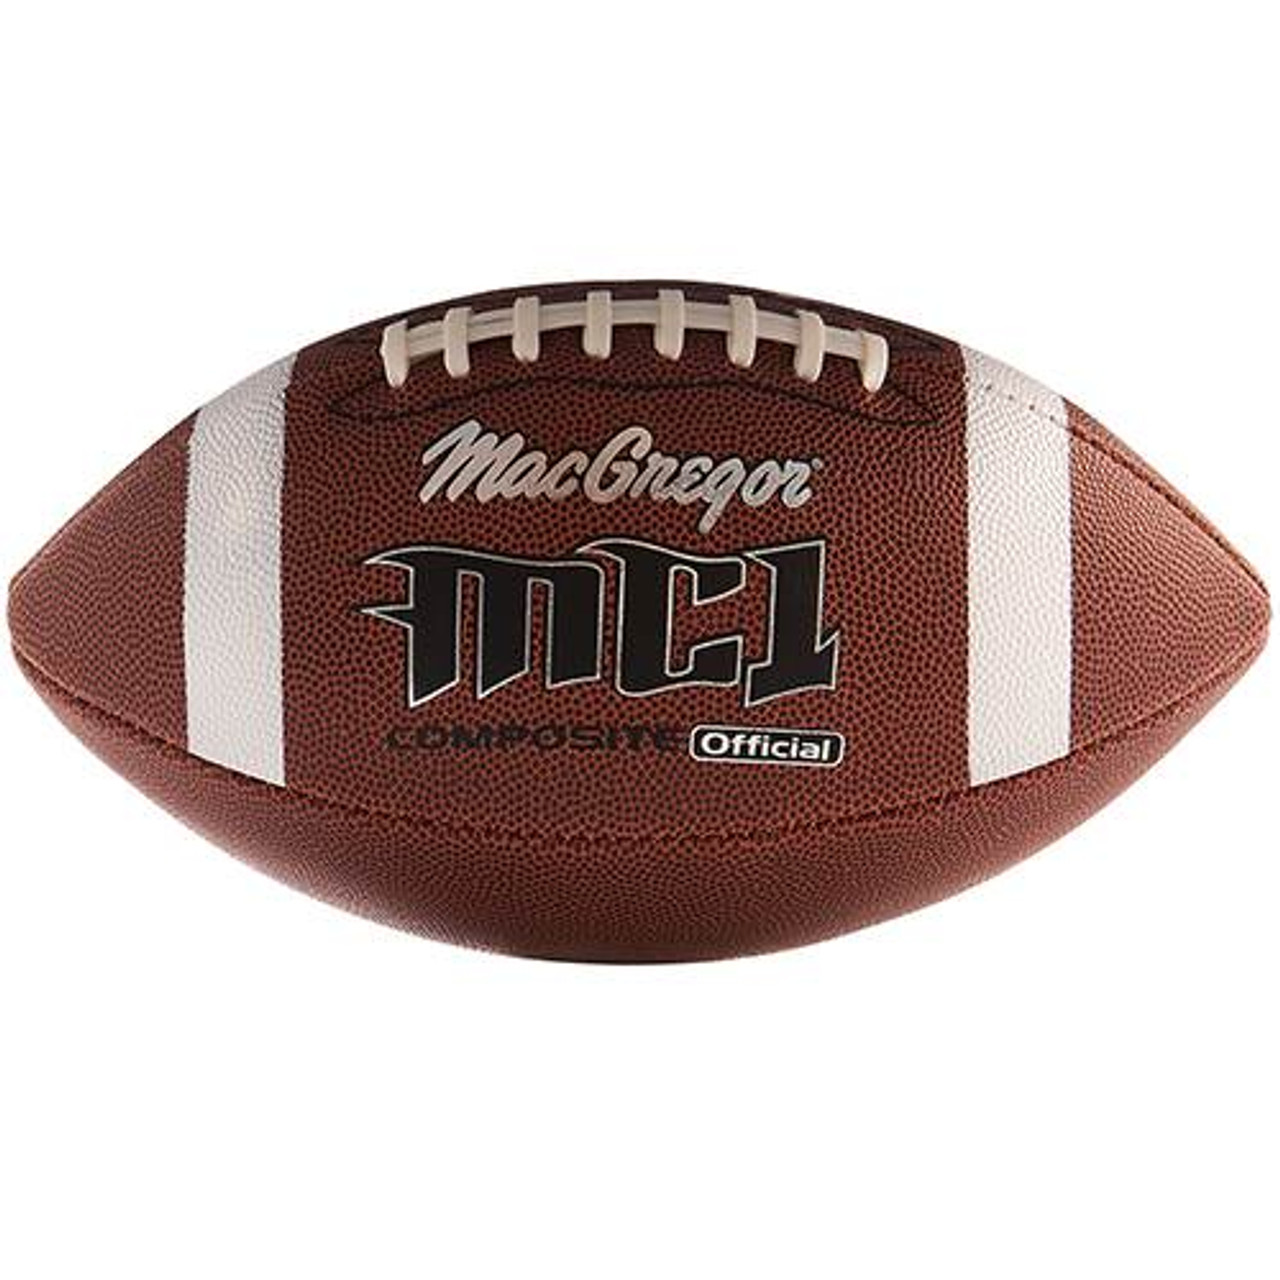 MacGregor MC Composite Football - Official Size